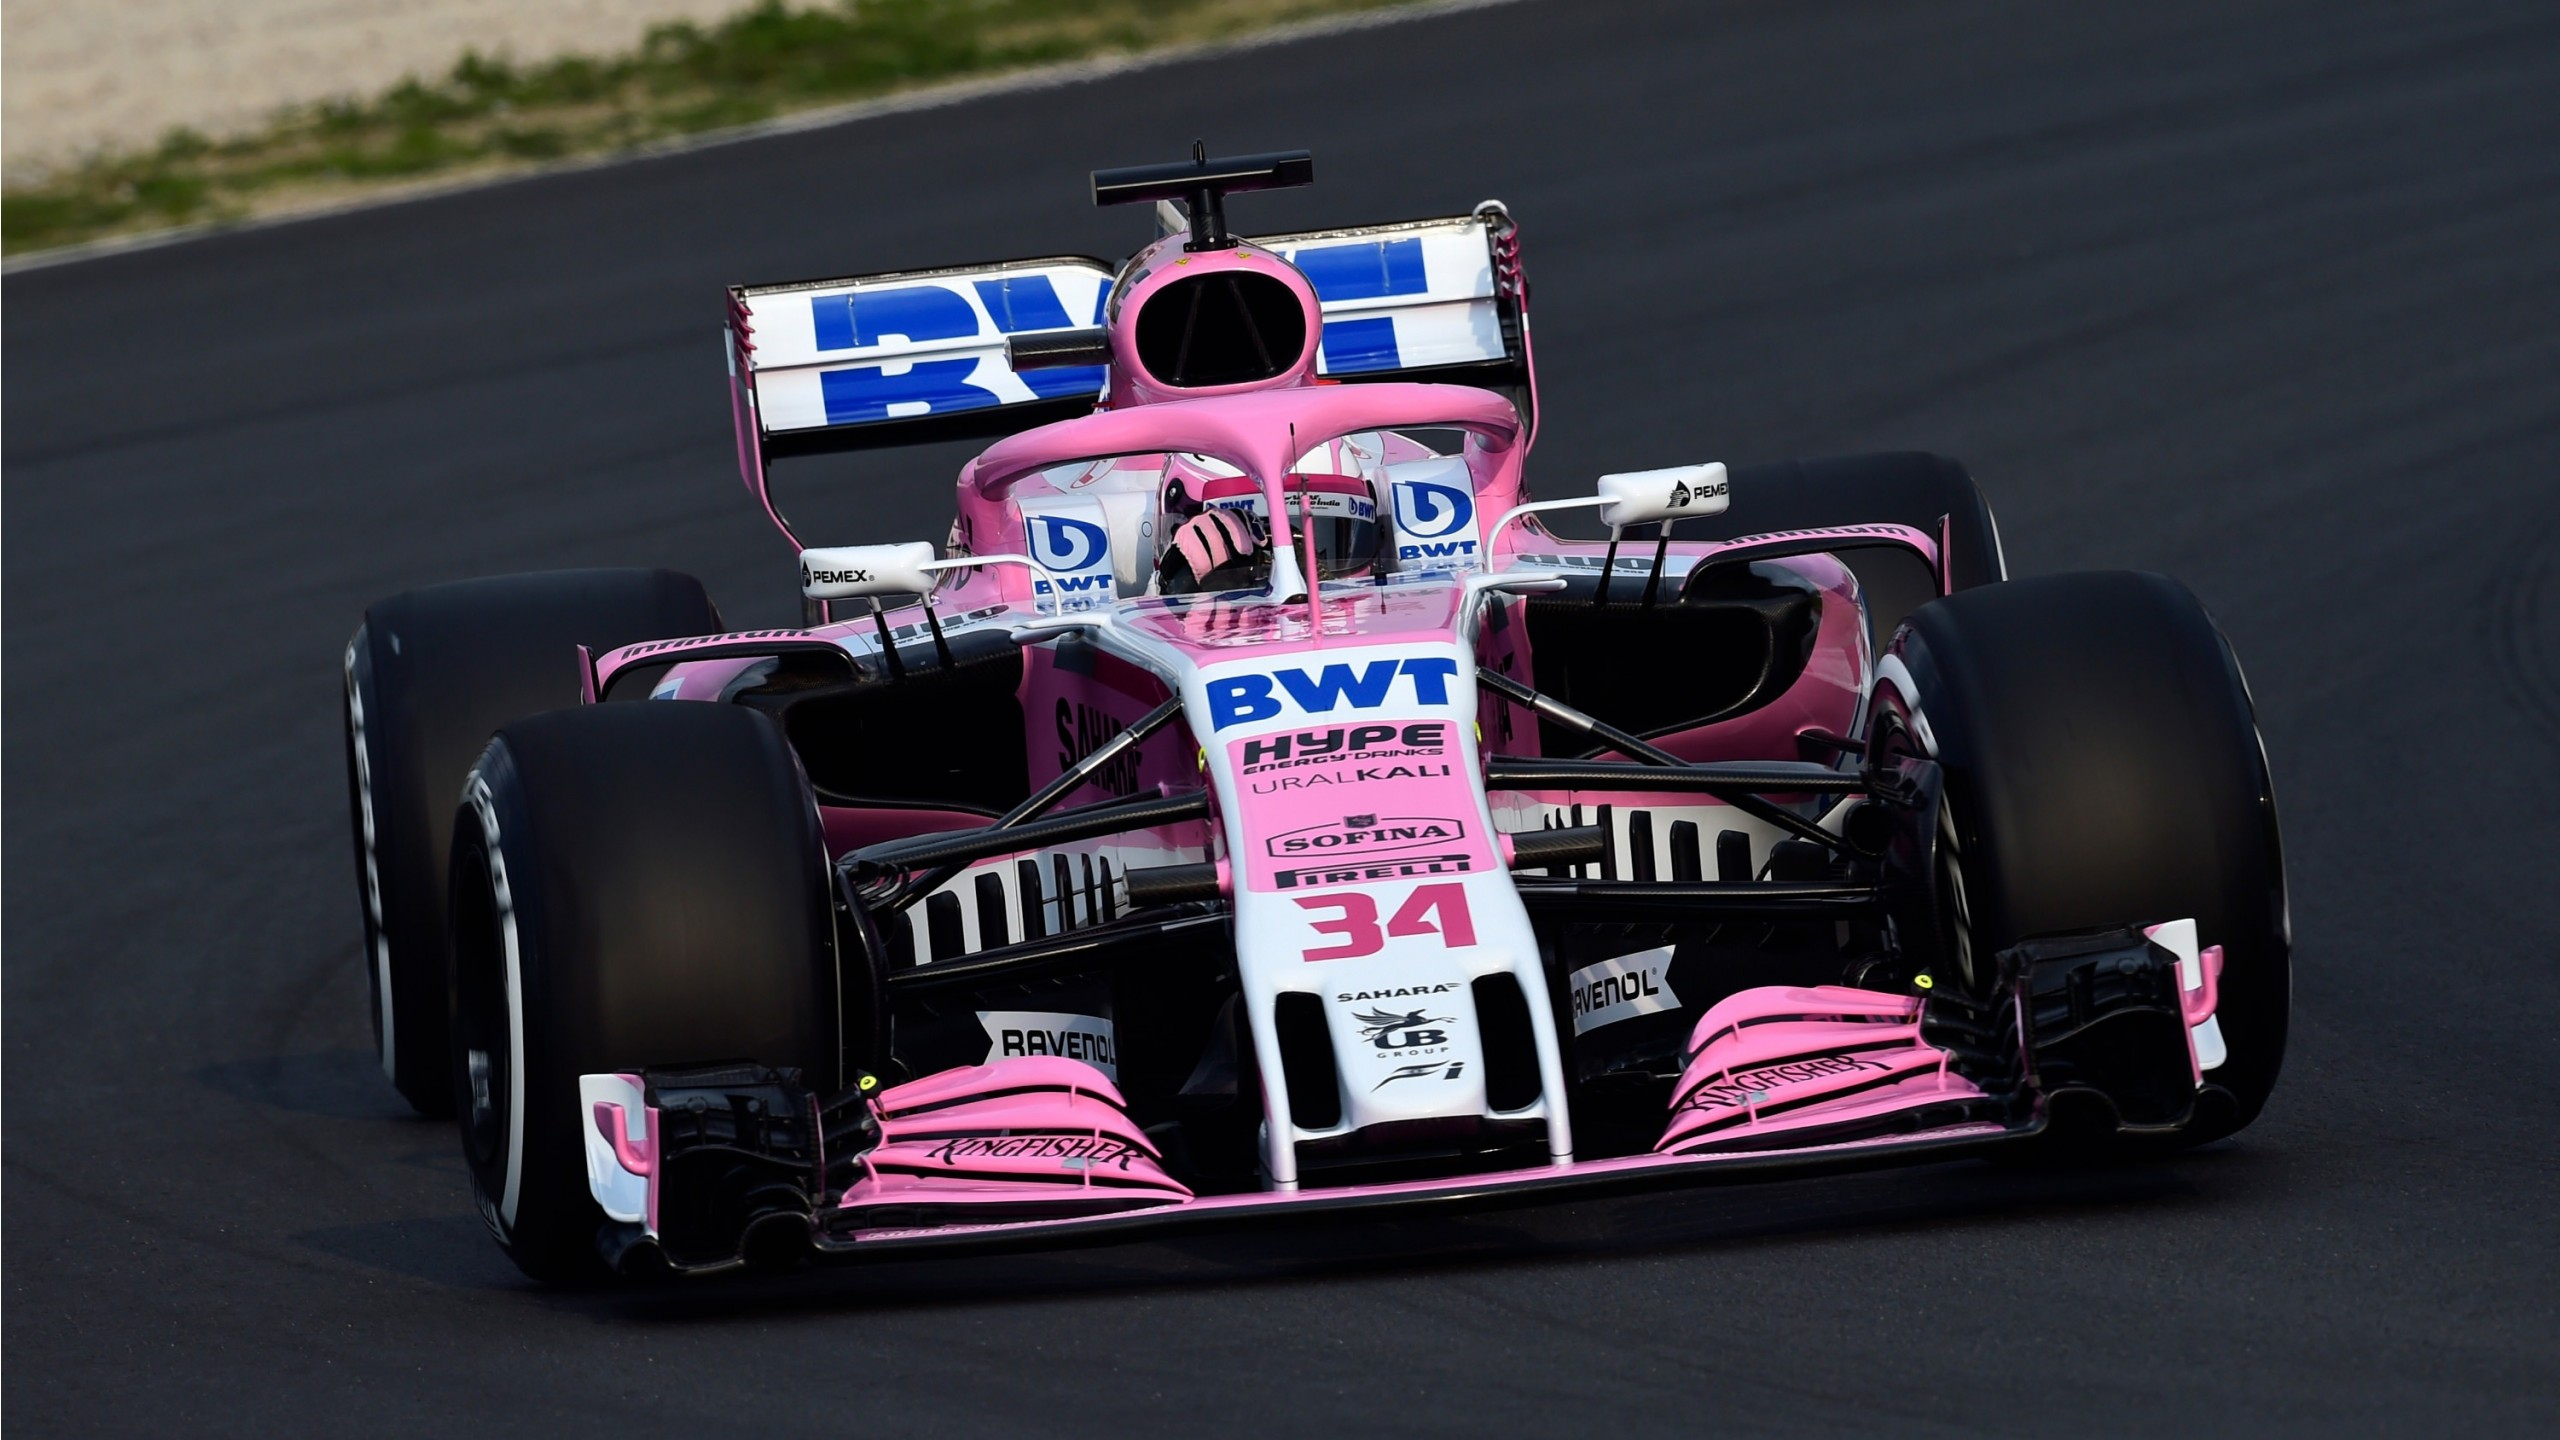 2018 force india vjm11 f1 formula 1 car wallpaper hd car